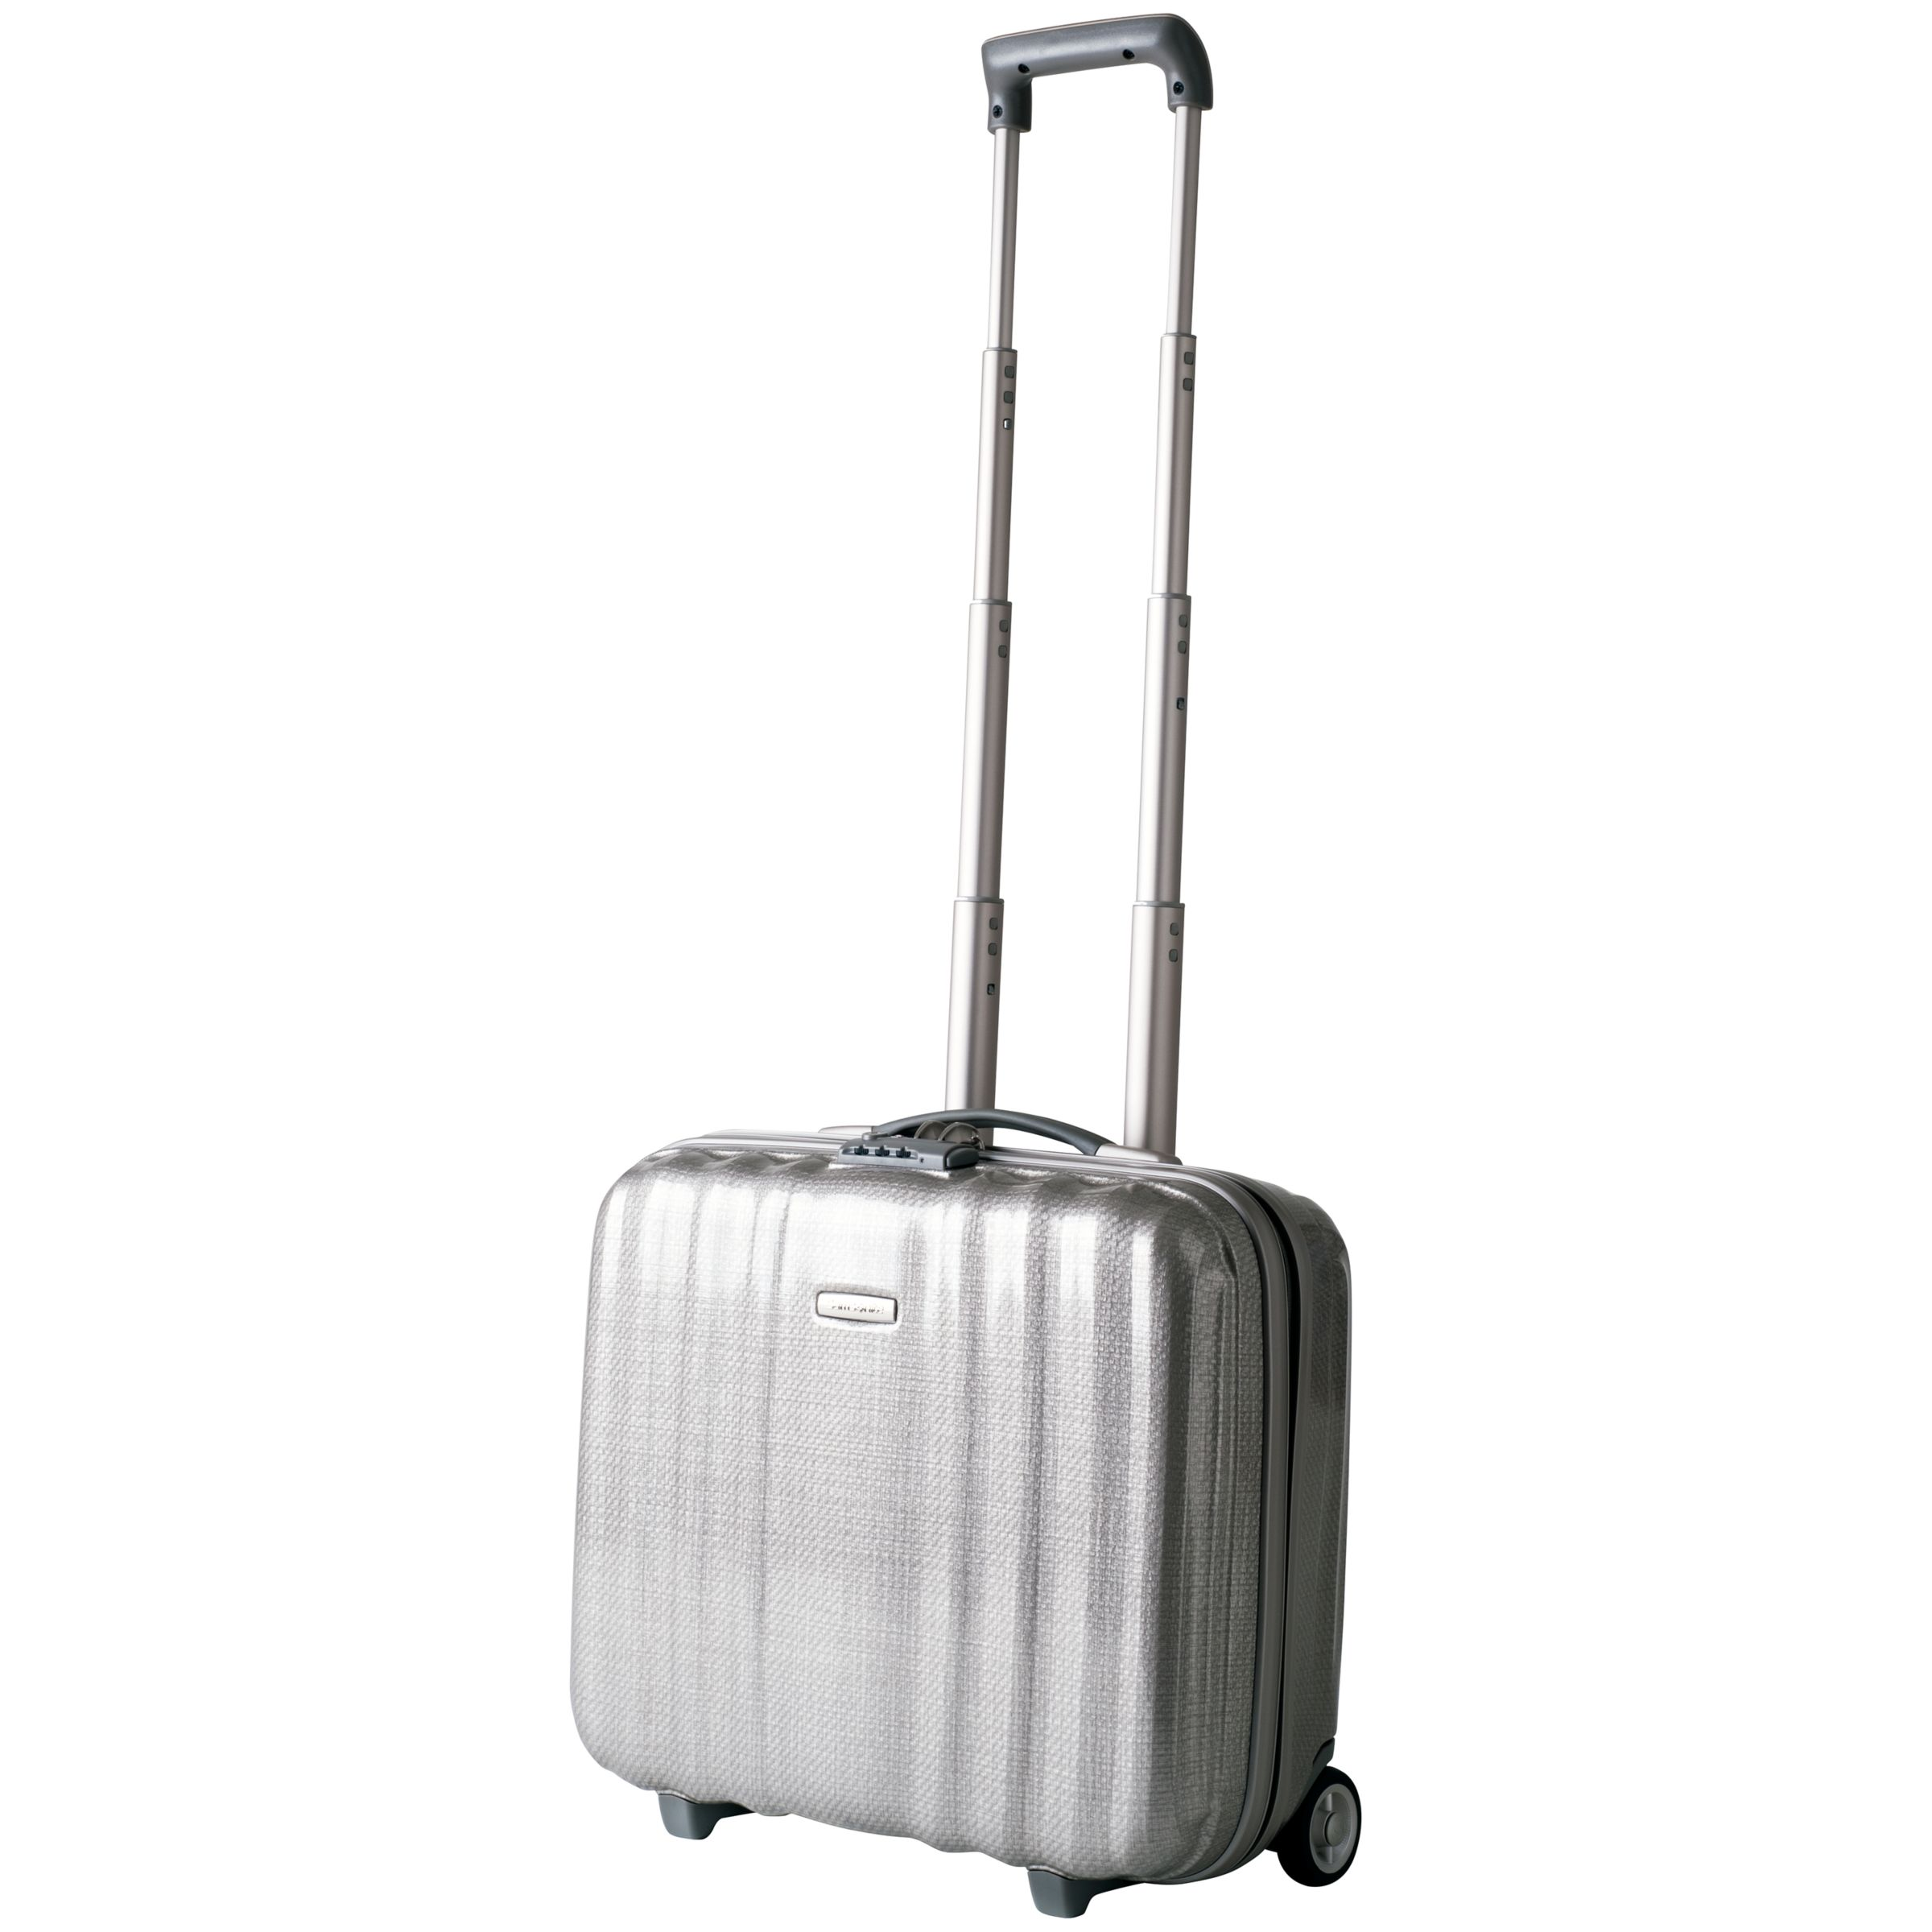 Samsonite Cubelite 2-Wheel Rolling Tote Bag, Champagne